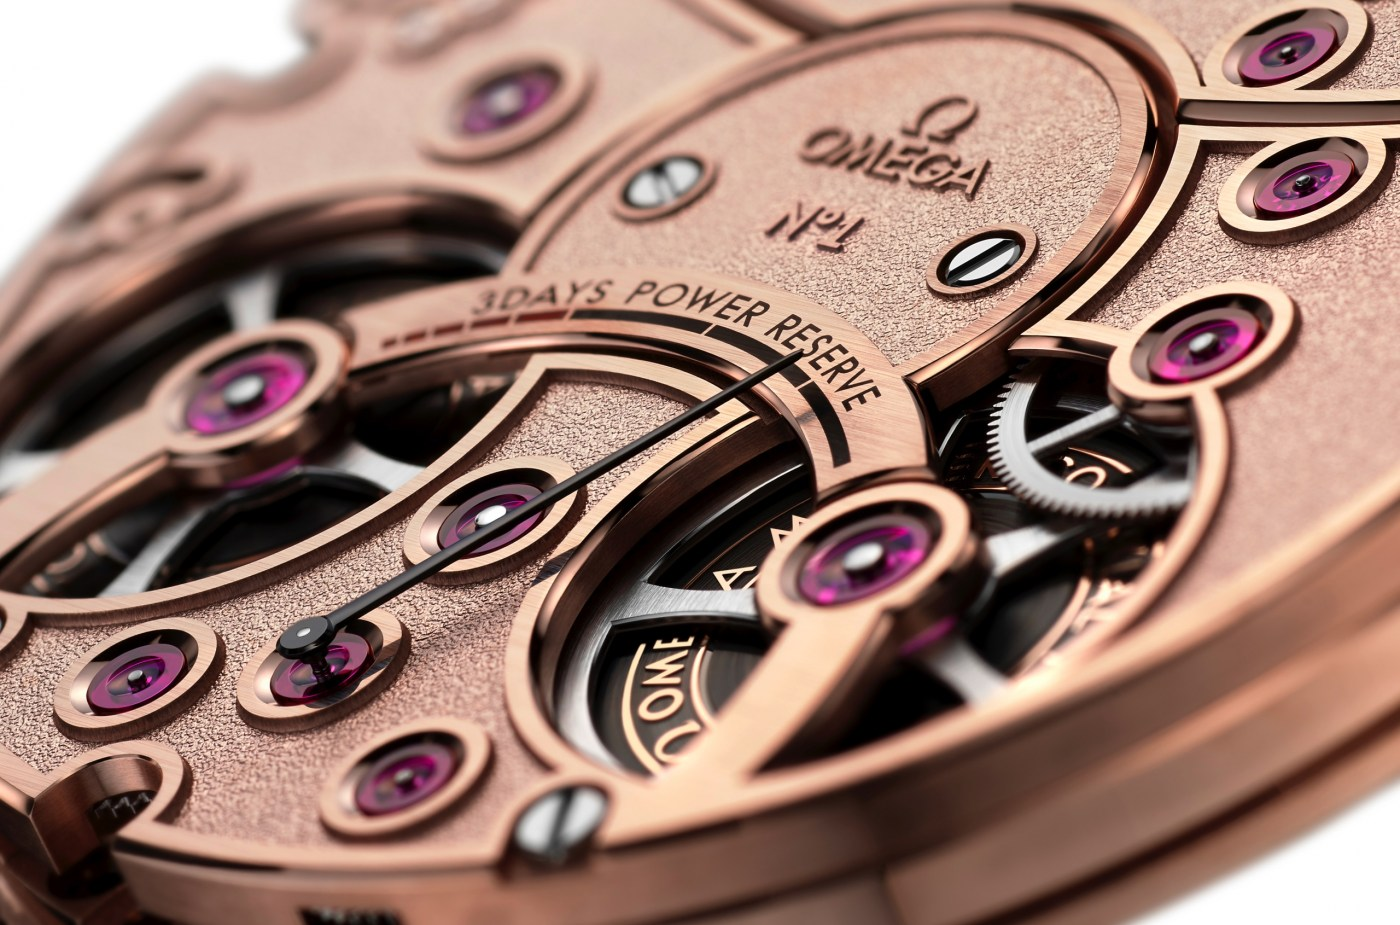 Omega De Ville Tourbillon Master Chronometer Numbered Edition caseback